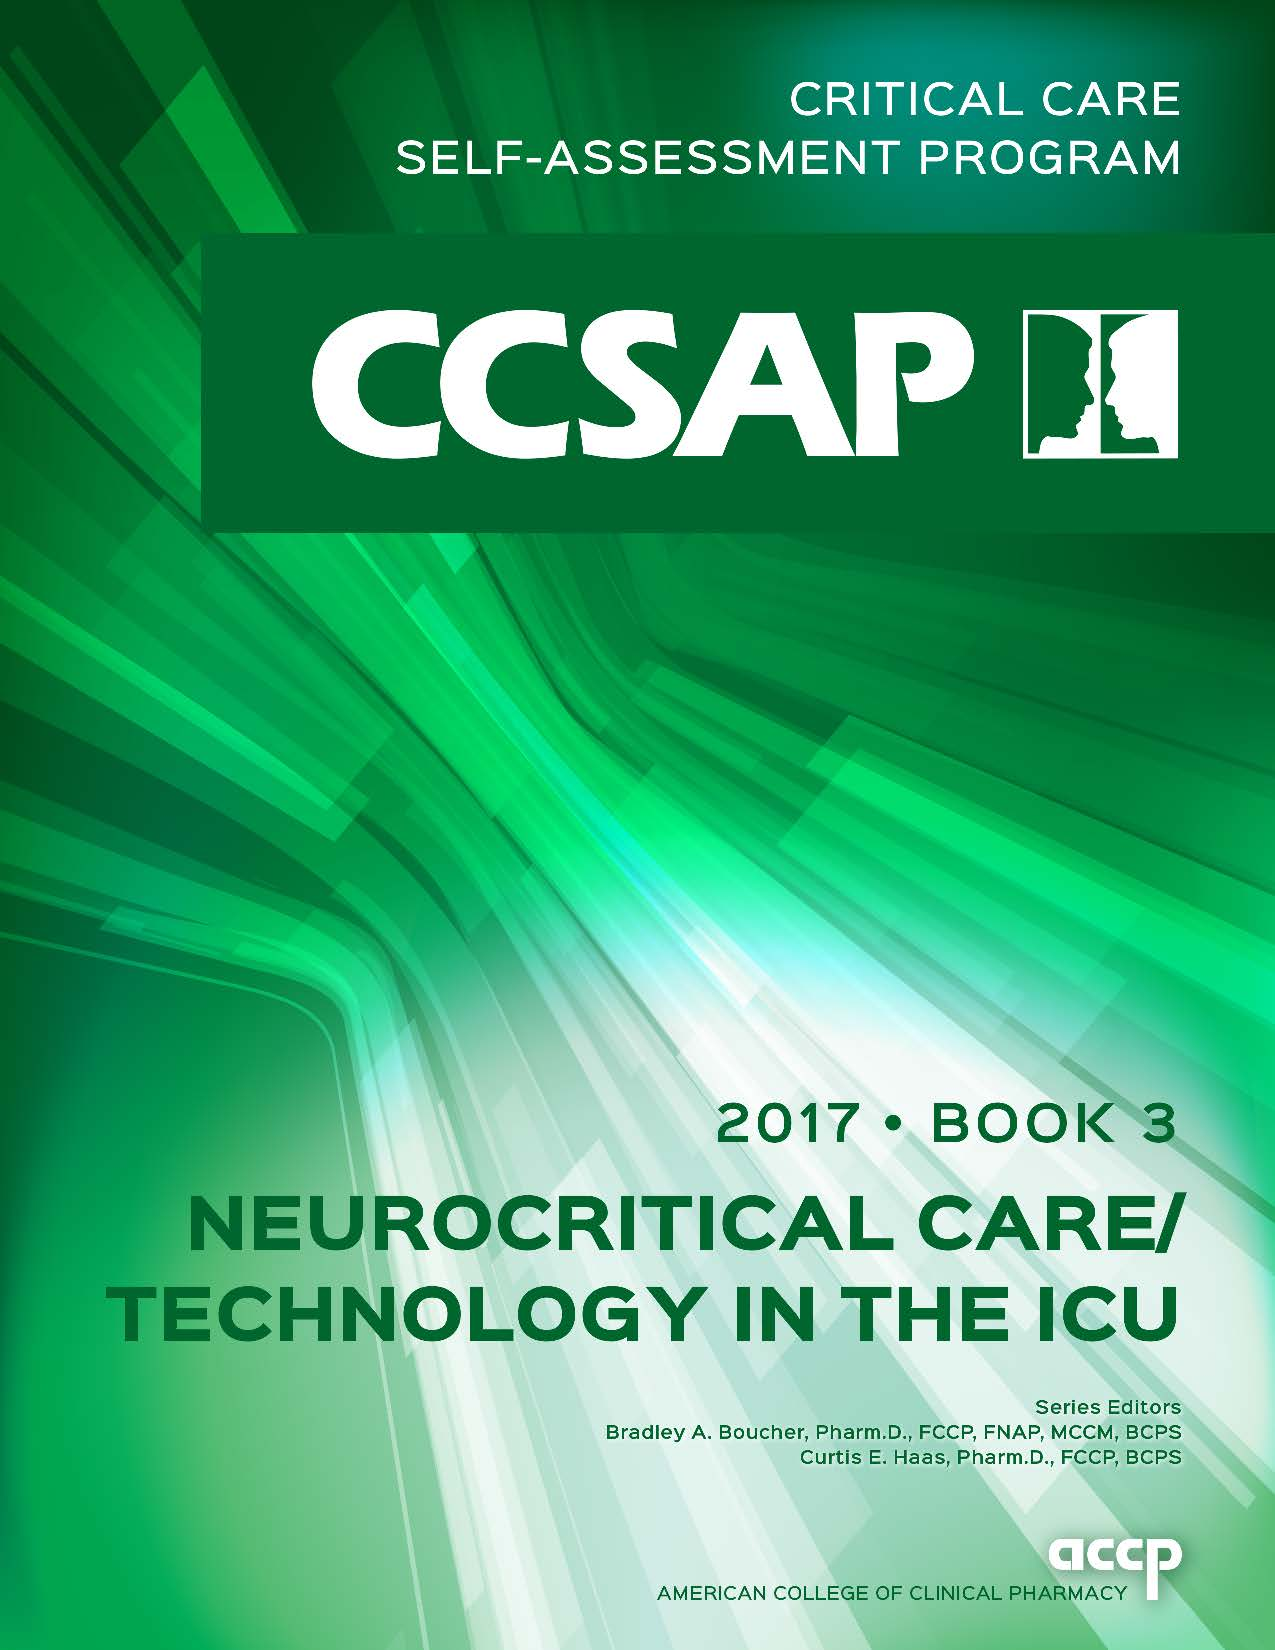 CCSAP 2017 Book 3 Neurocritical Care/Technology in the ICU